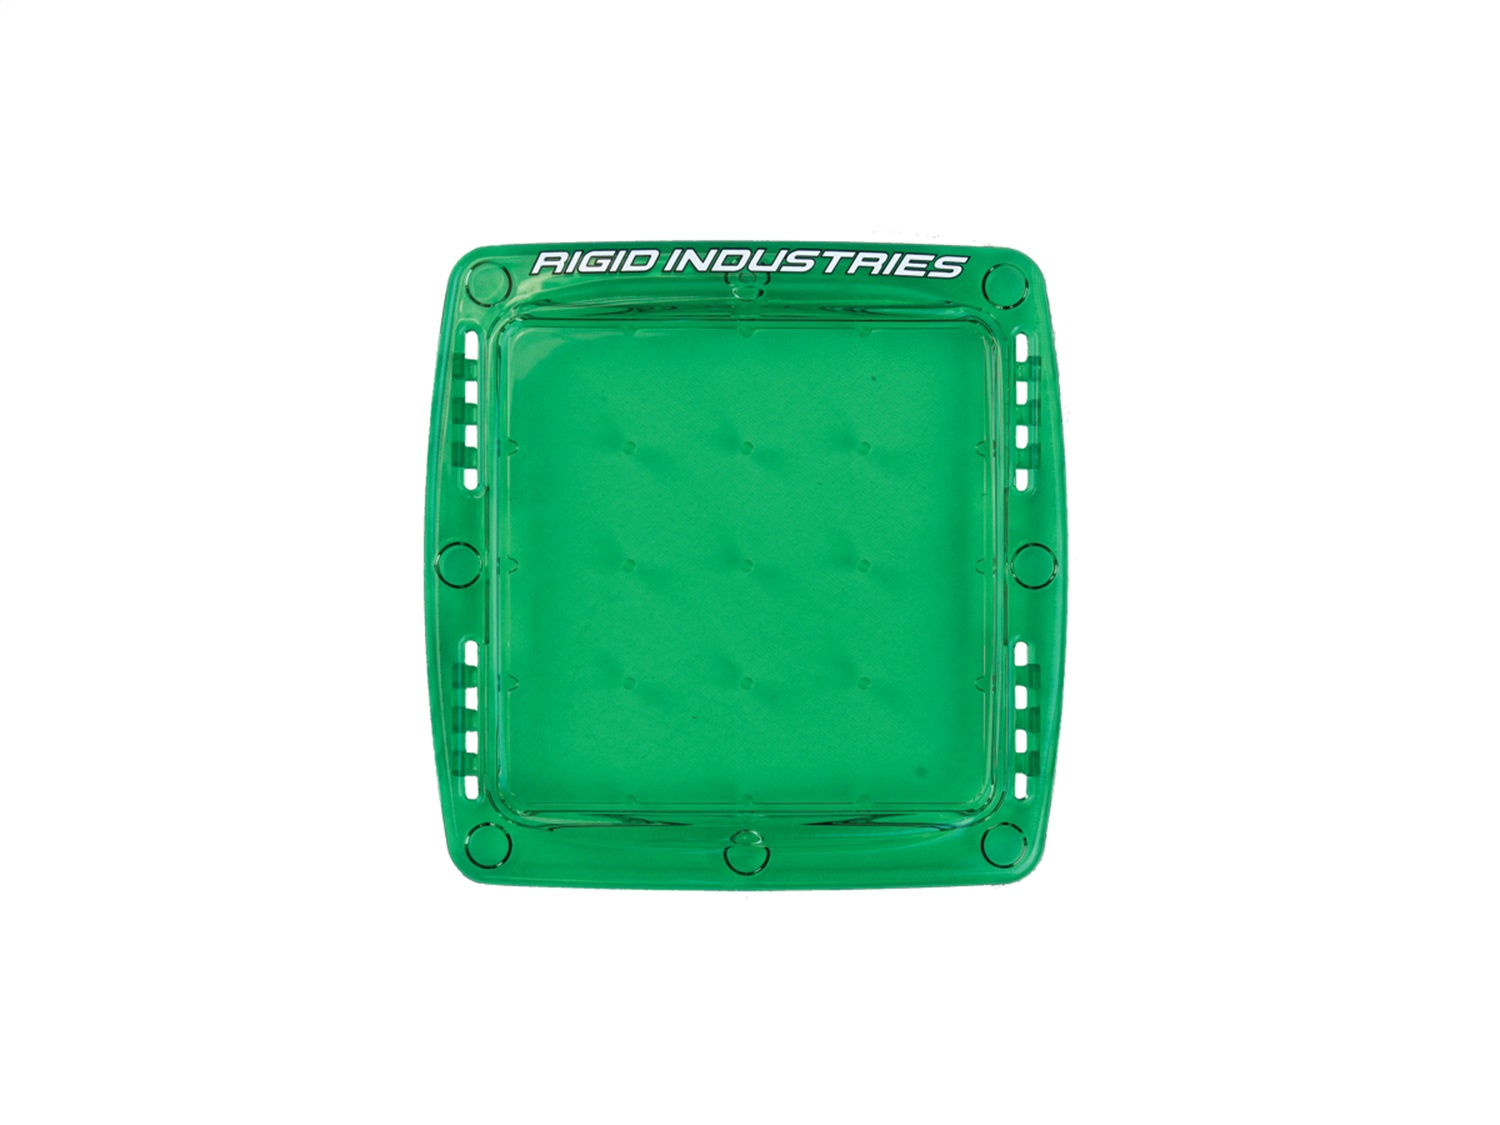 Rigid Industries 10397 Q Series Light Cover